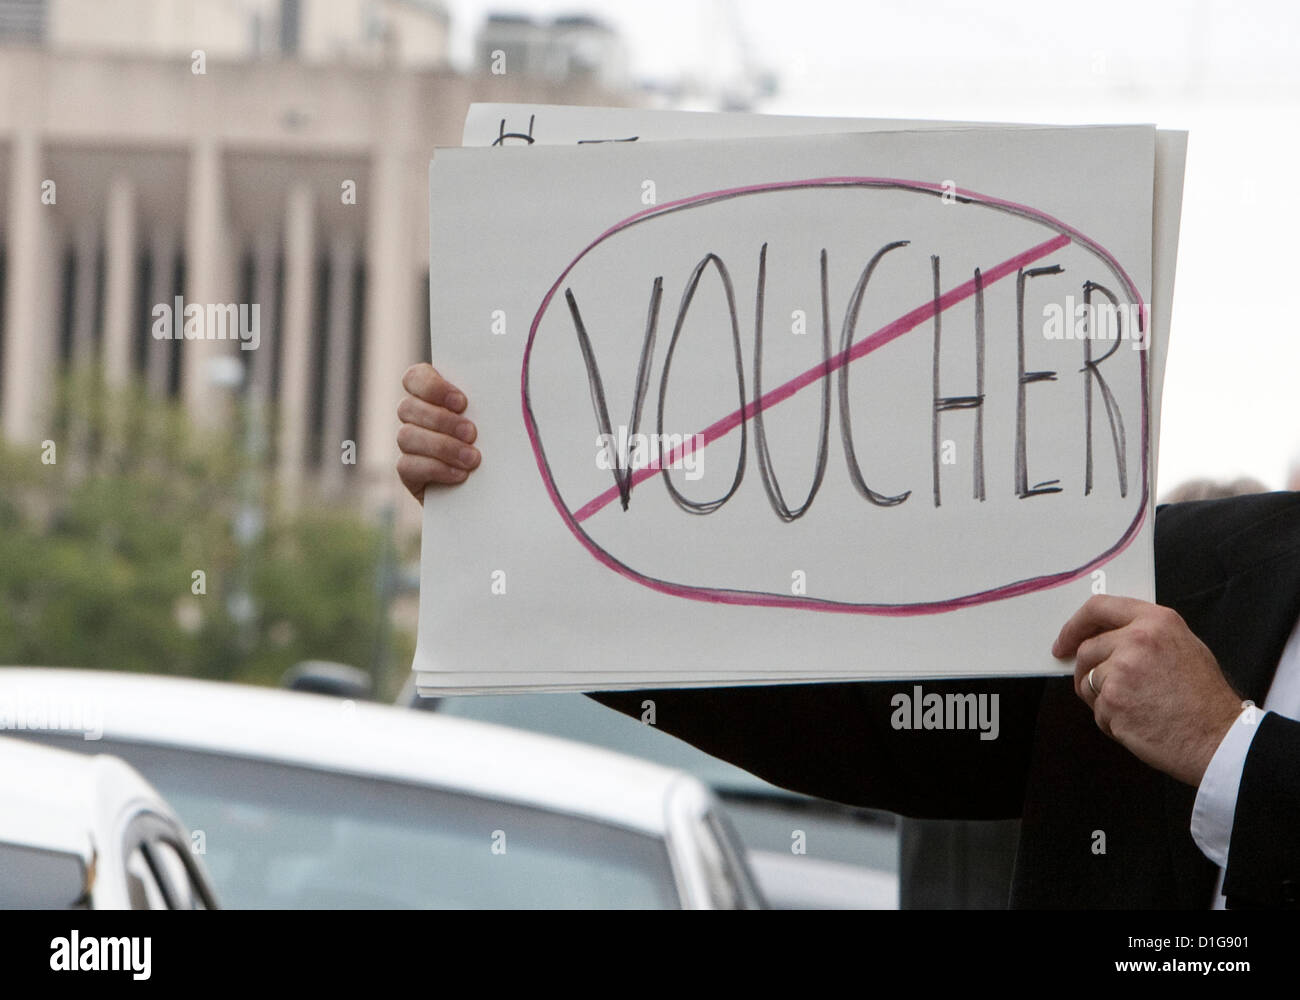 man holds up sign protesting school voucher use in Texas where lawmakers may allow use of public tax funds for private - Stock Image